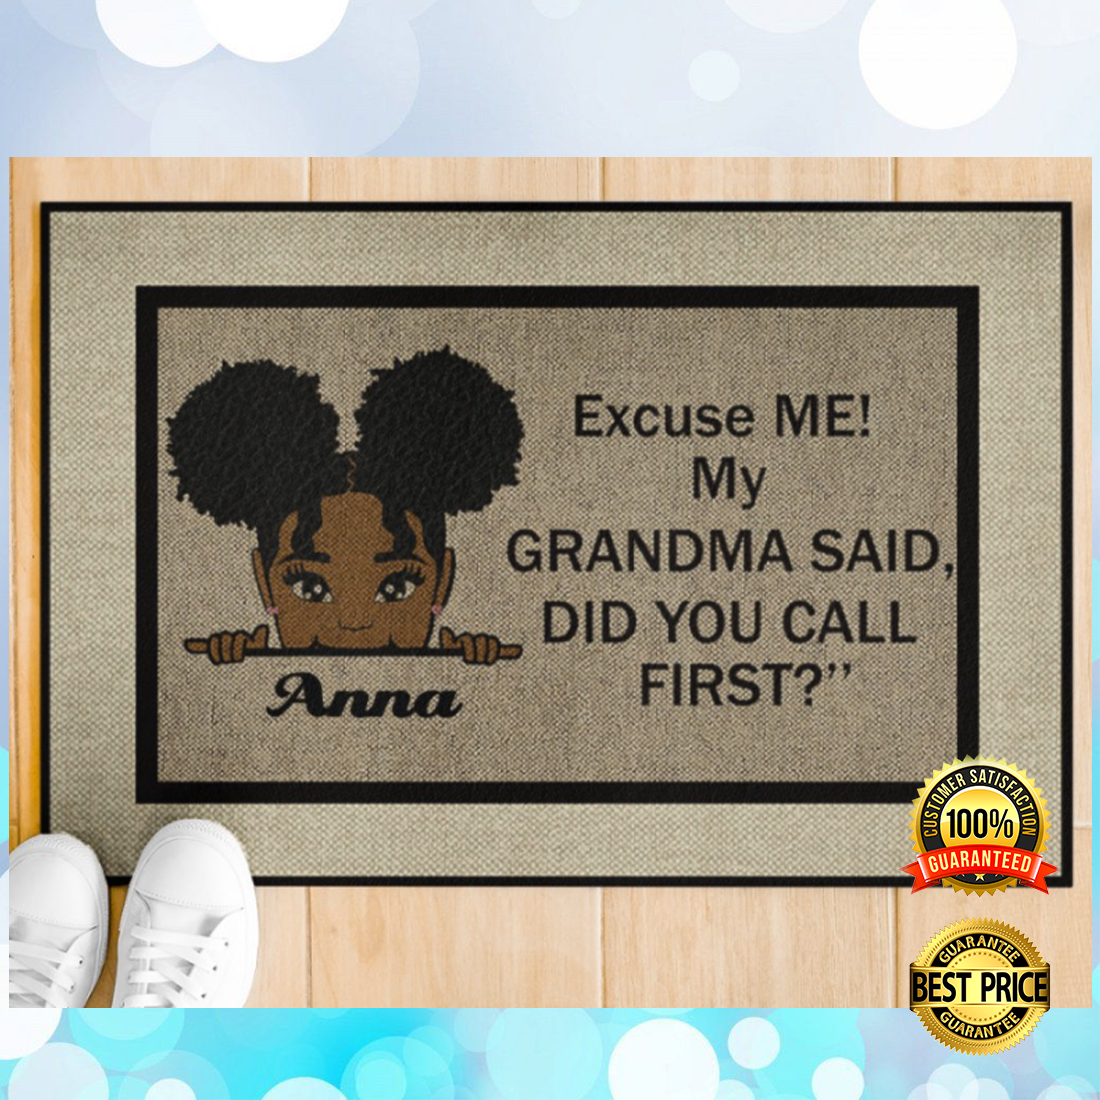 PERSONALIZED EXCUSE ME MY GRANDMA SAID DID YOU CALL FIRST DOORMAT 6